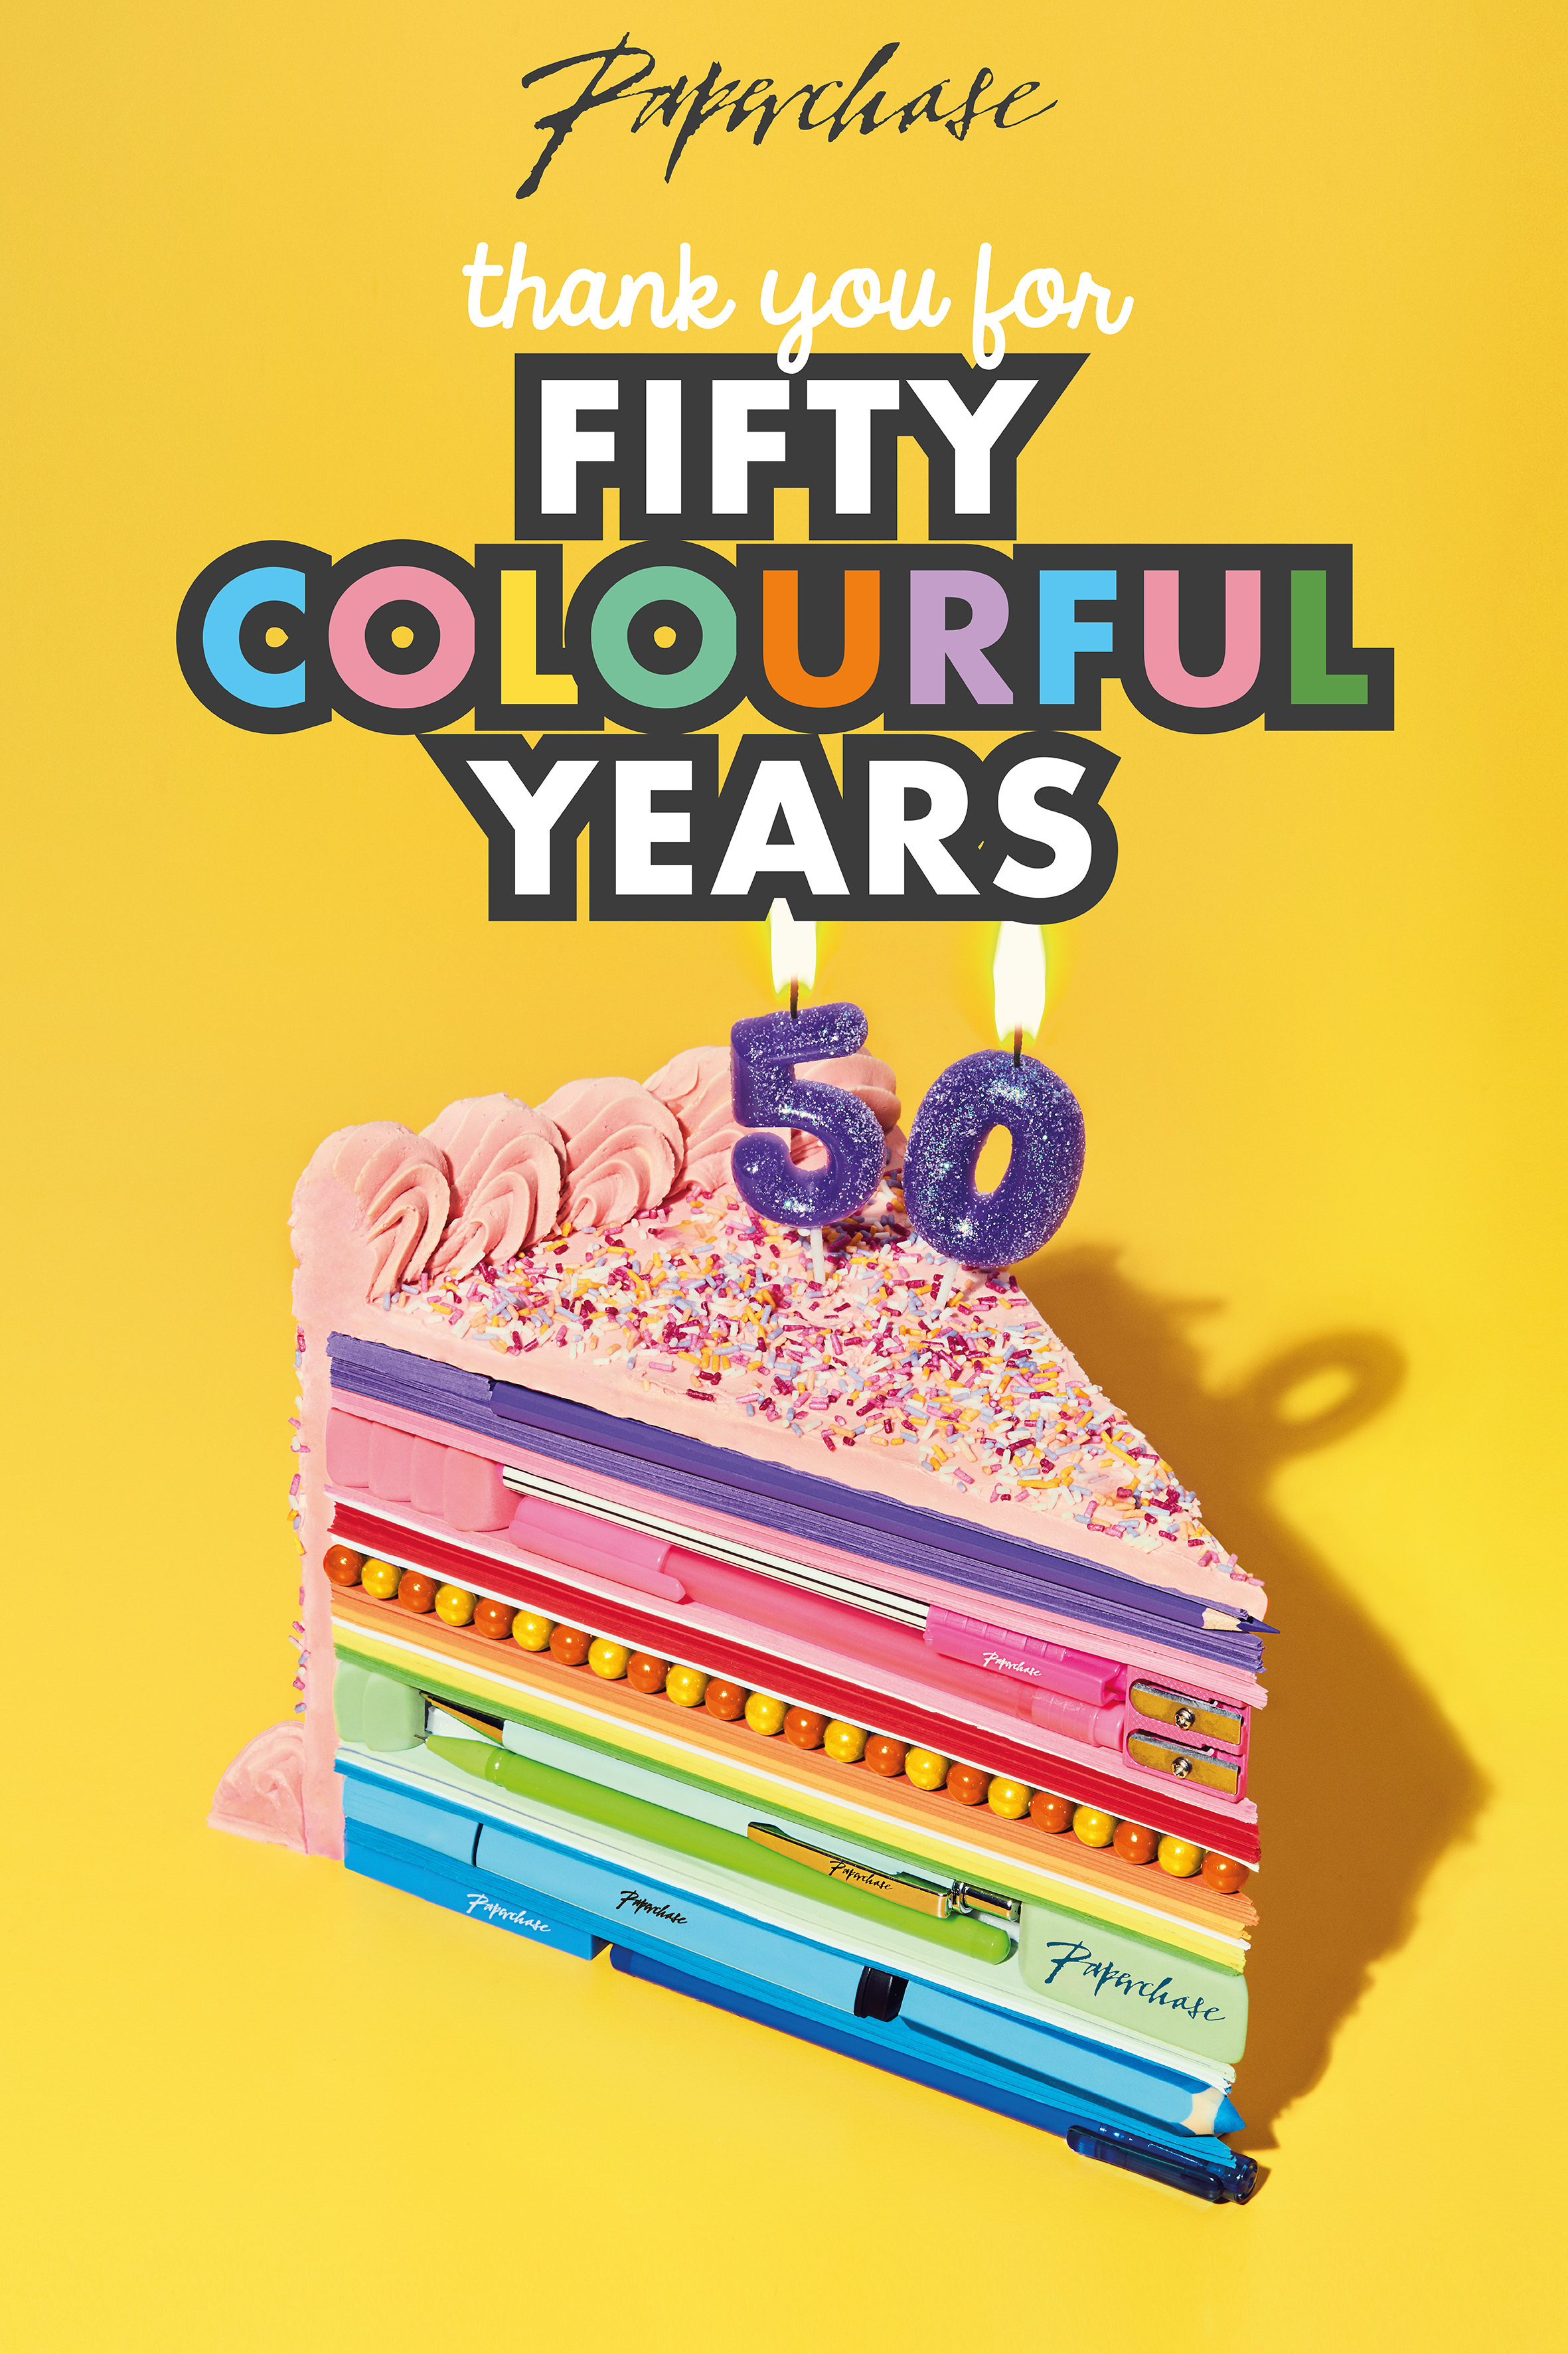 Above: In 2018 Paperchase celebrated its 50th anniversary.